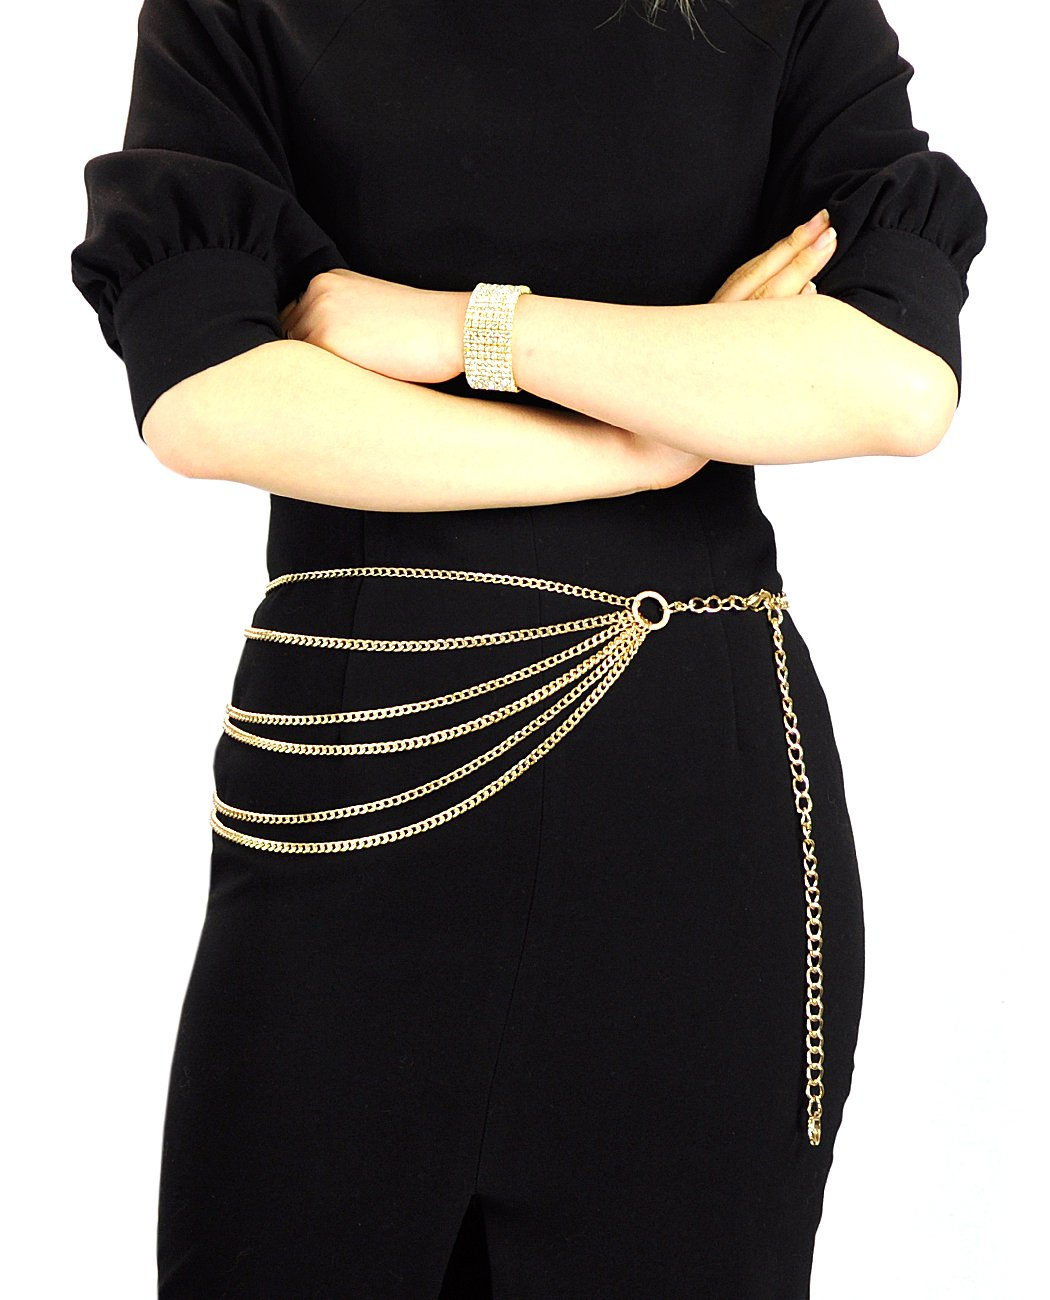 NYfashion101 Trendy Belly Chain Belt w/ Multi Link Chains & Loop IBT1005-Gold